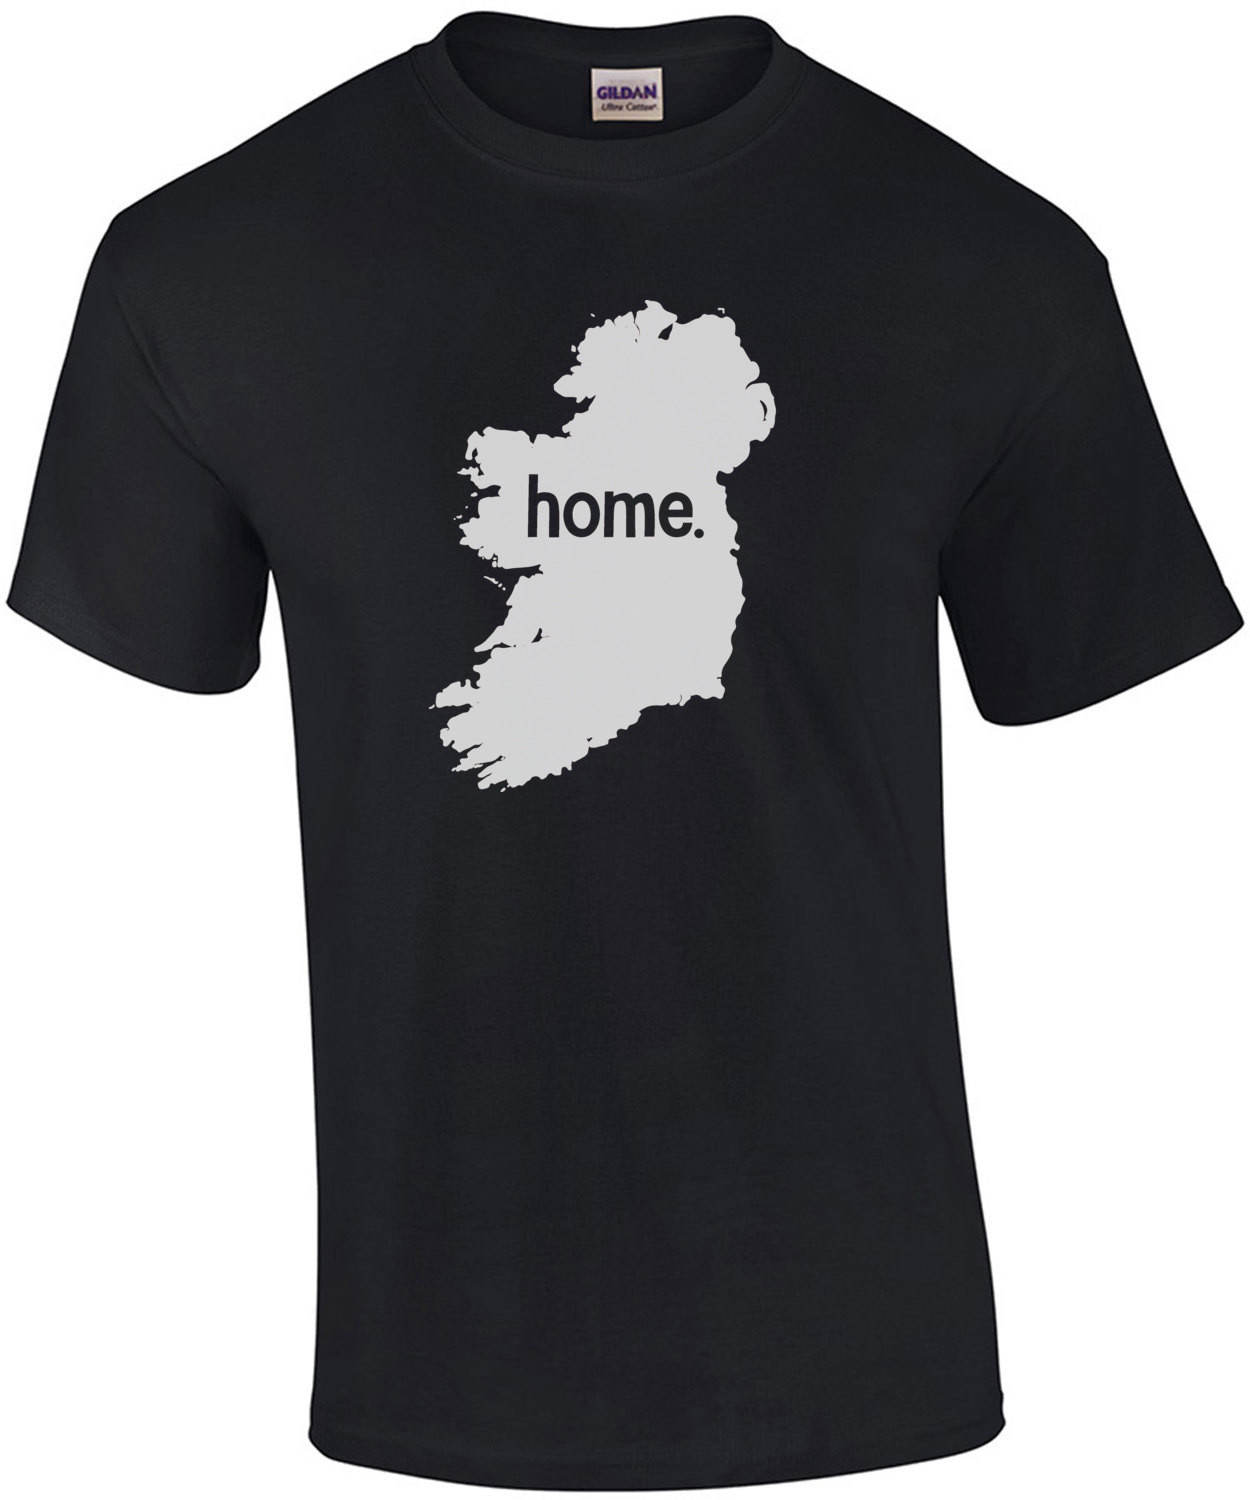 Ireland Home T-Shirt